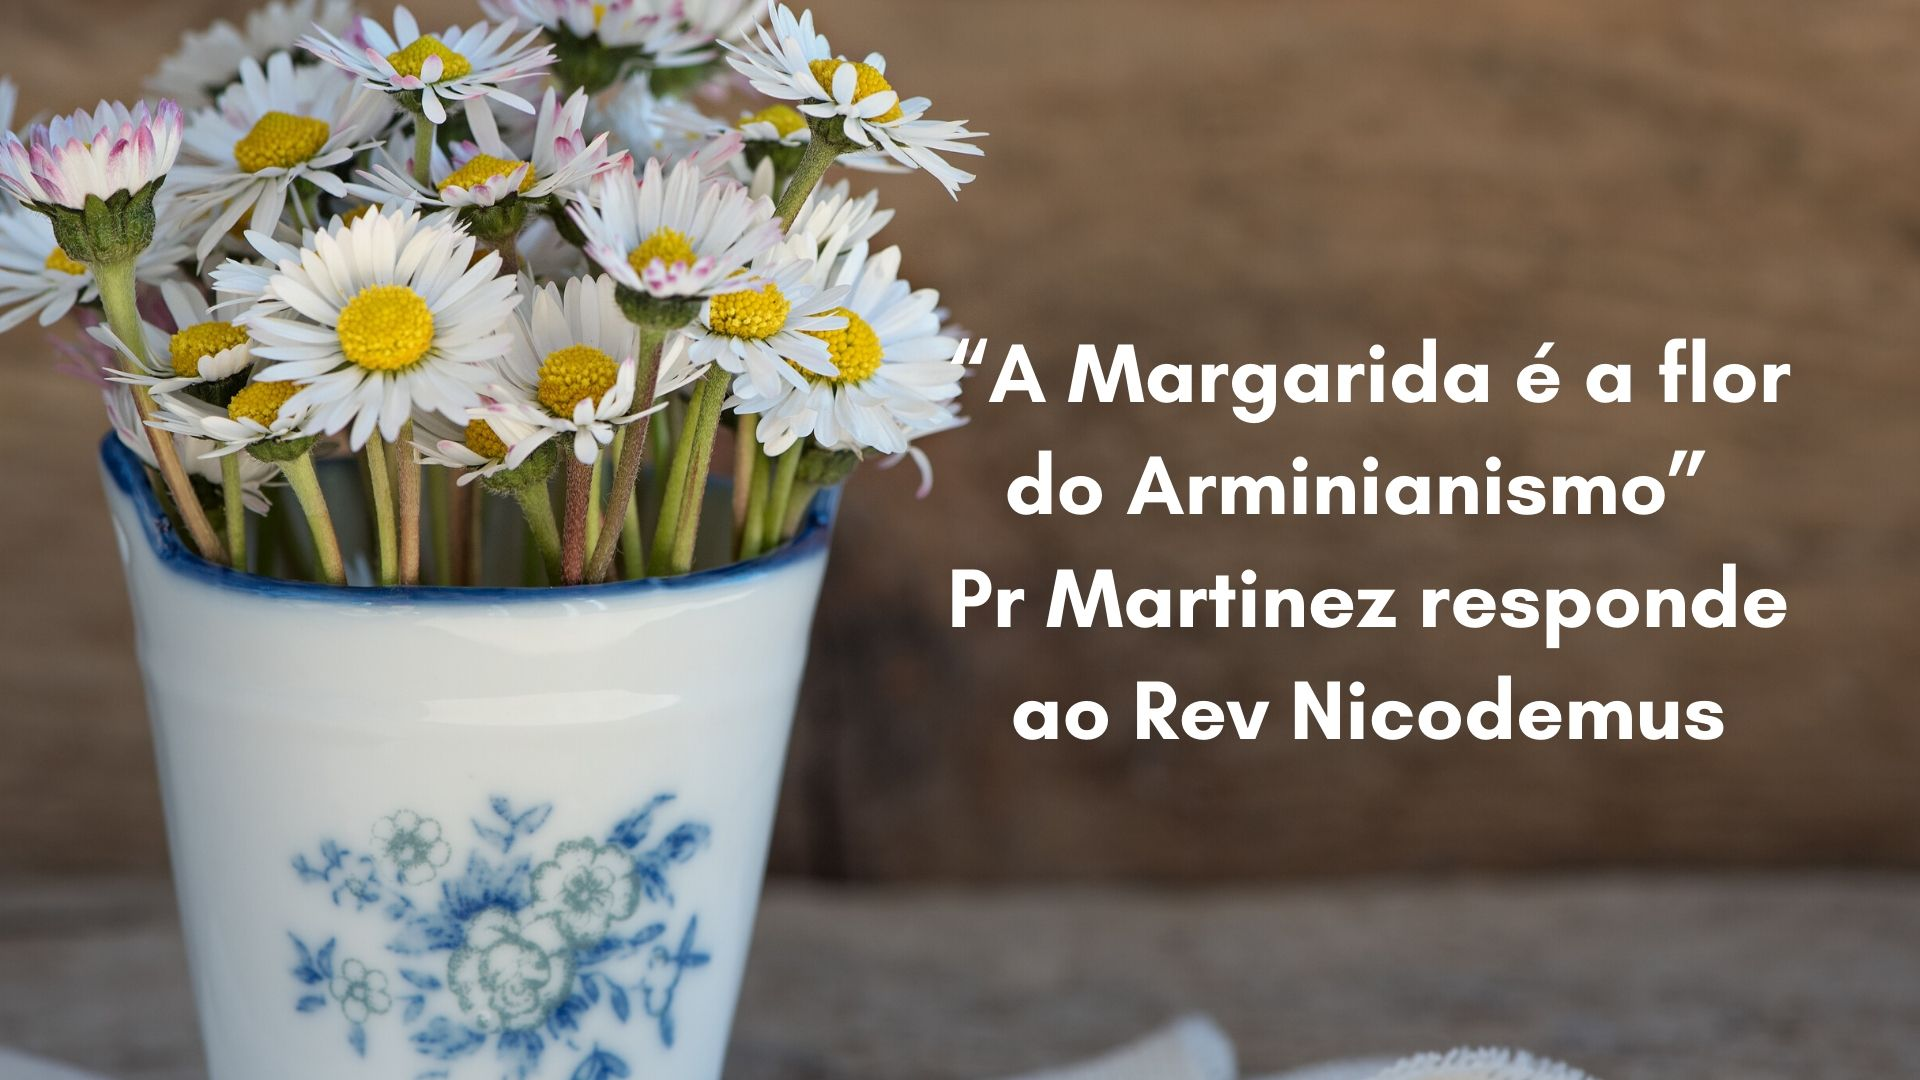 A Margarida é a flor do Arminianismo?